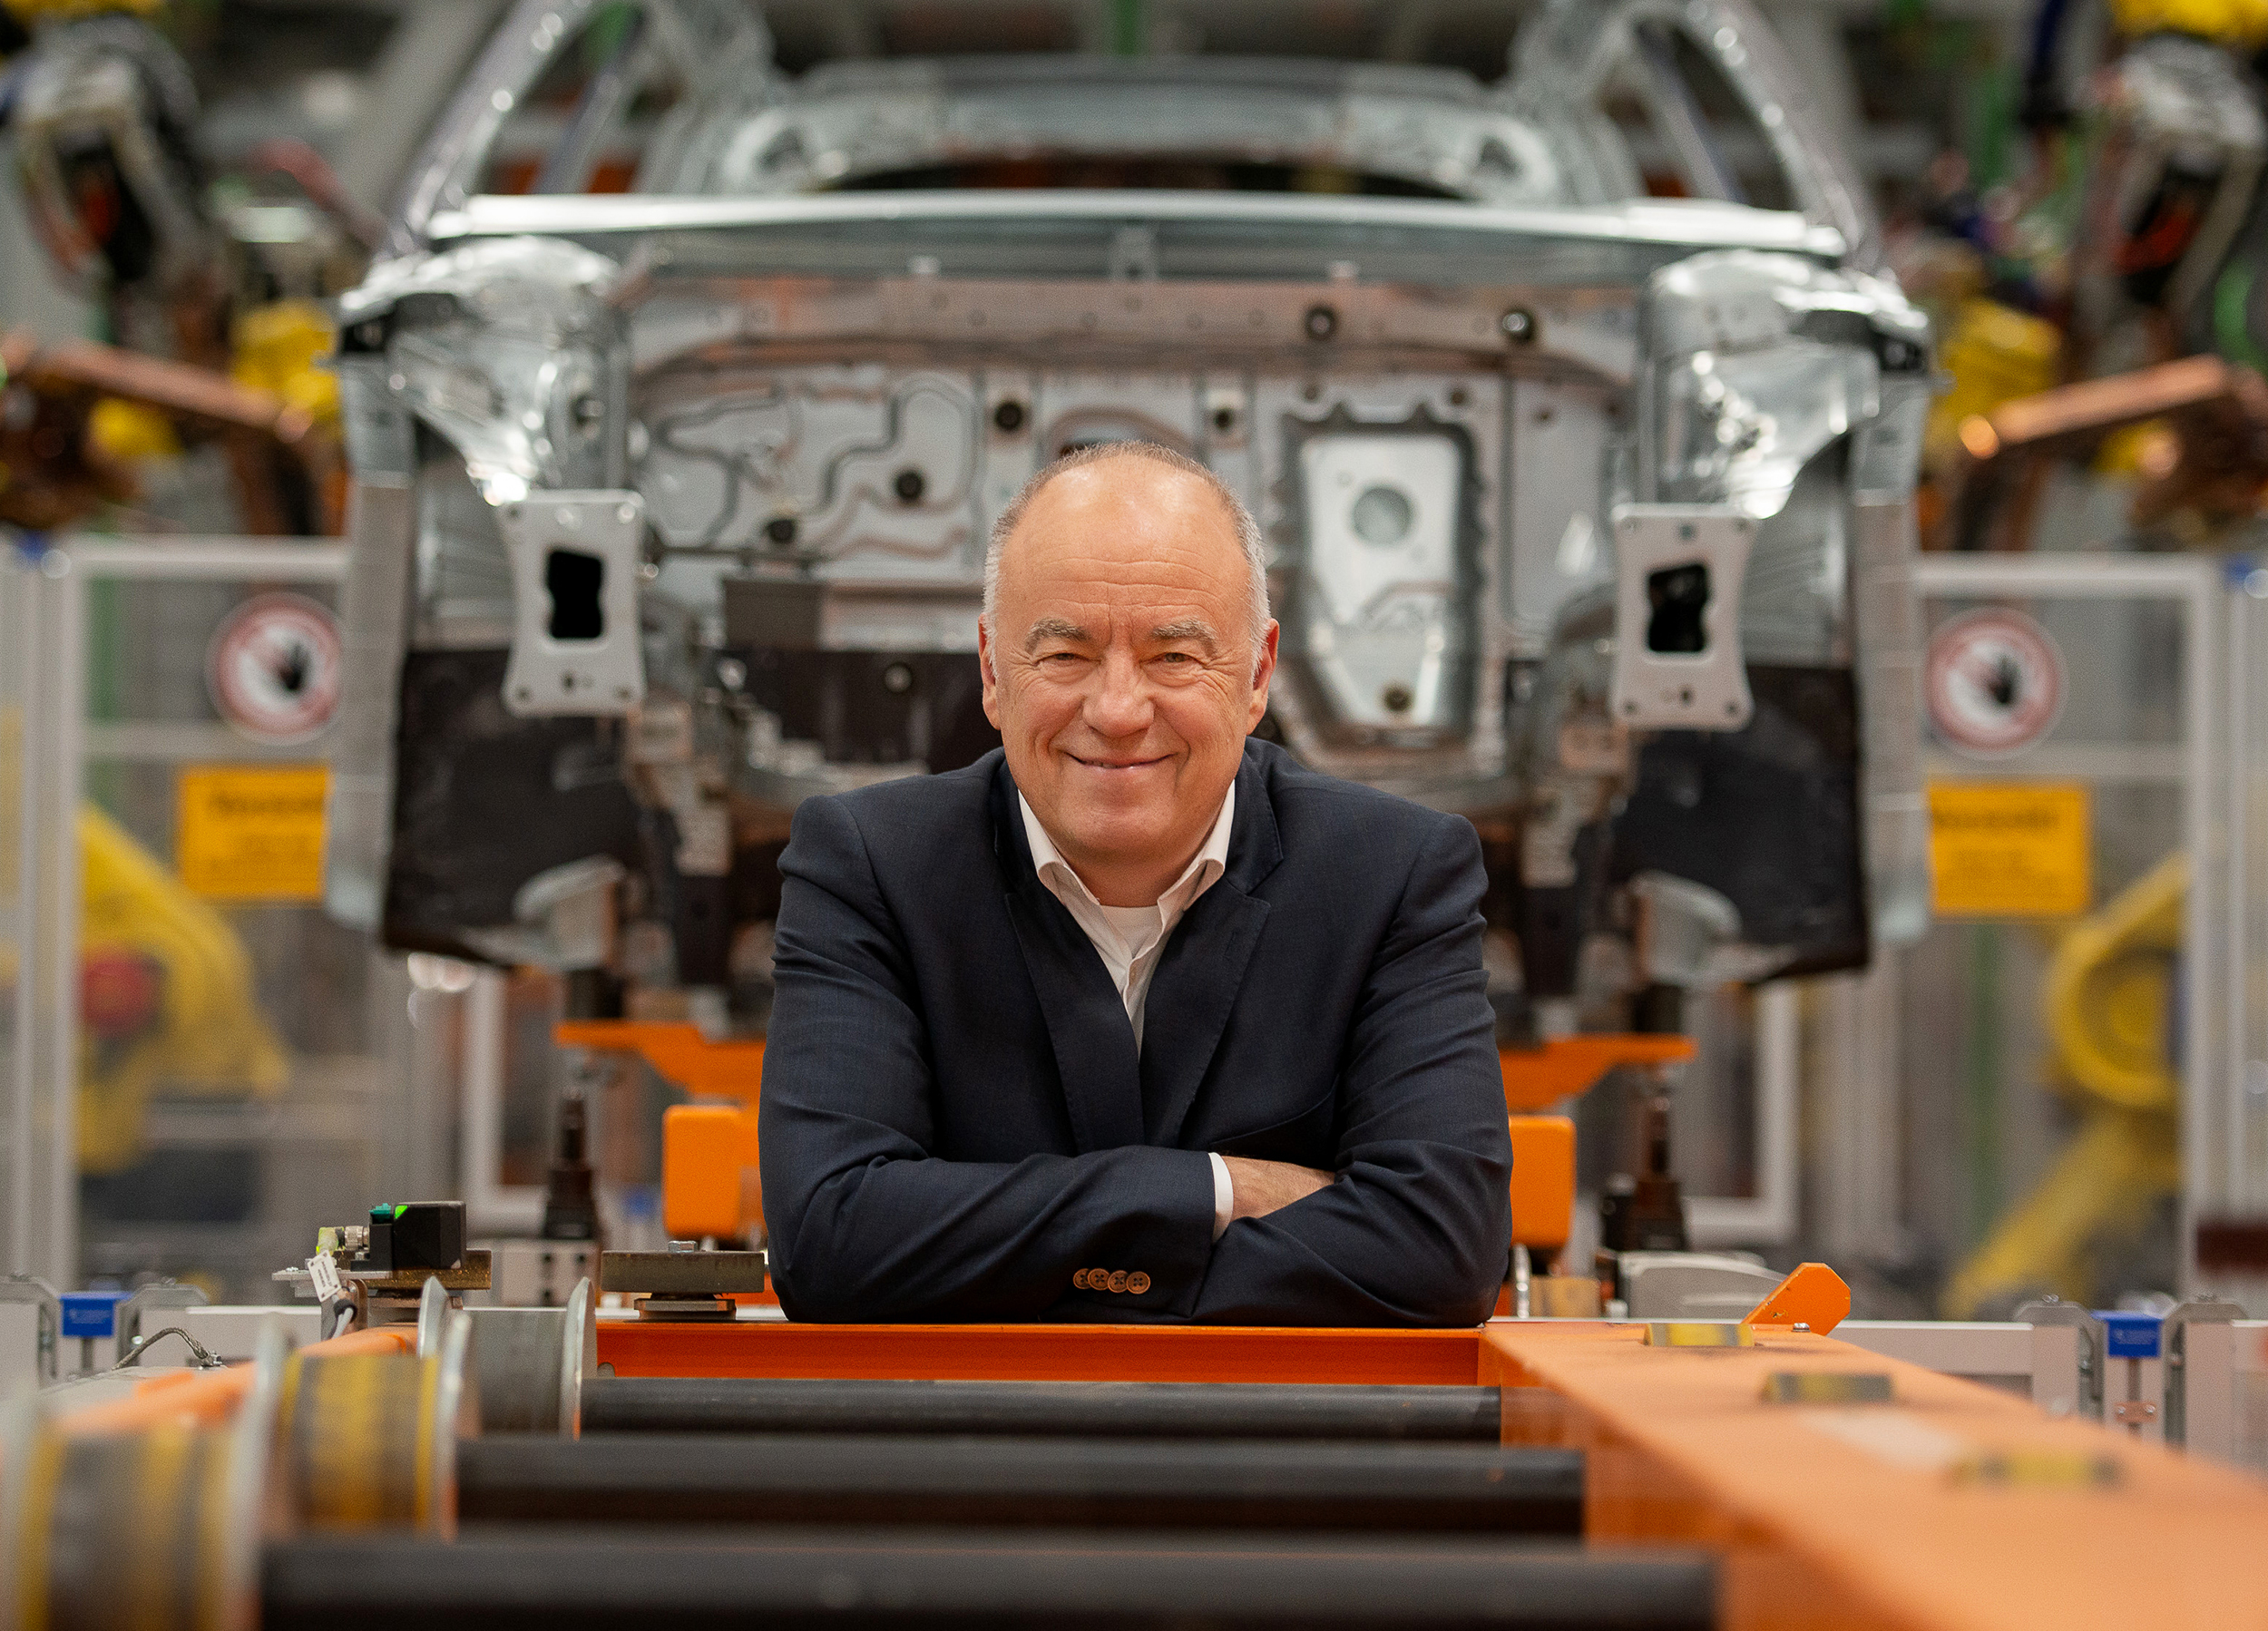 Extensive experience: Production board member Peter Kössler joined Audi in the mid-1980s as a trainee.